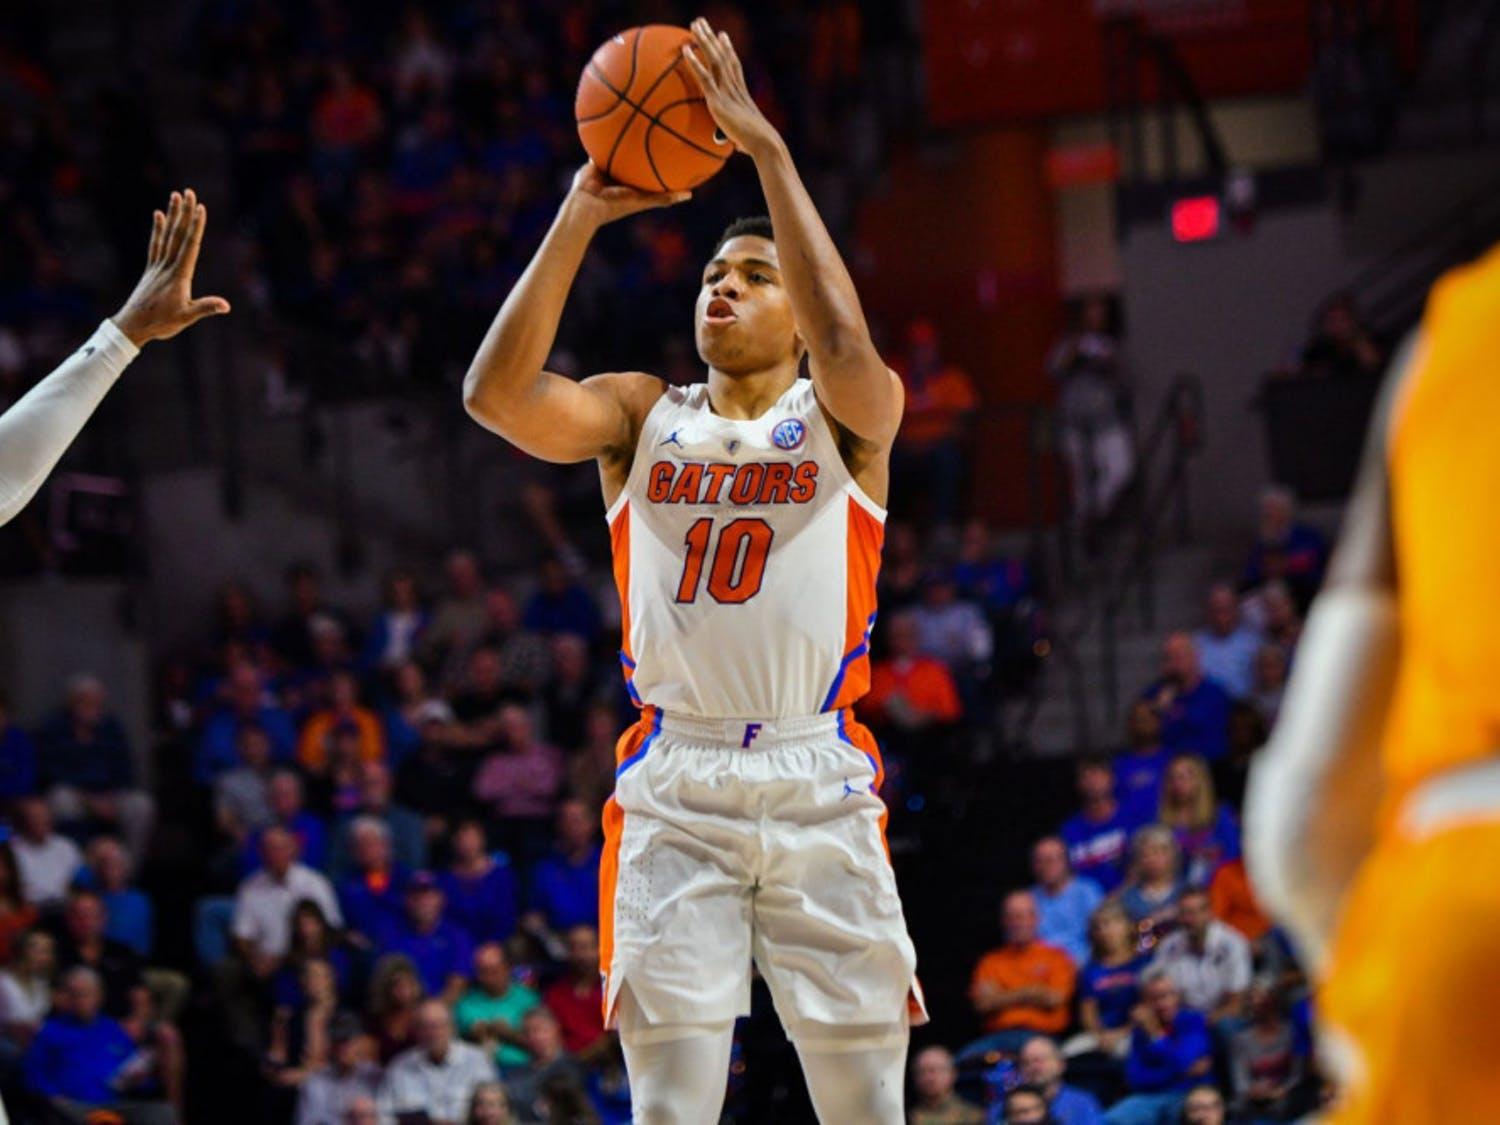 UF guard Noah Locke scored16 points, including a 4-of-9 from three-point range in the Gators' 78-67 loss to Tennessee on Saturday.